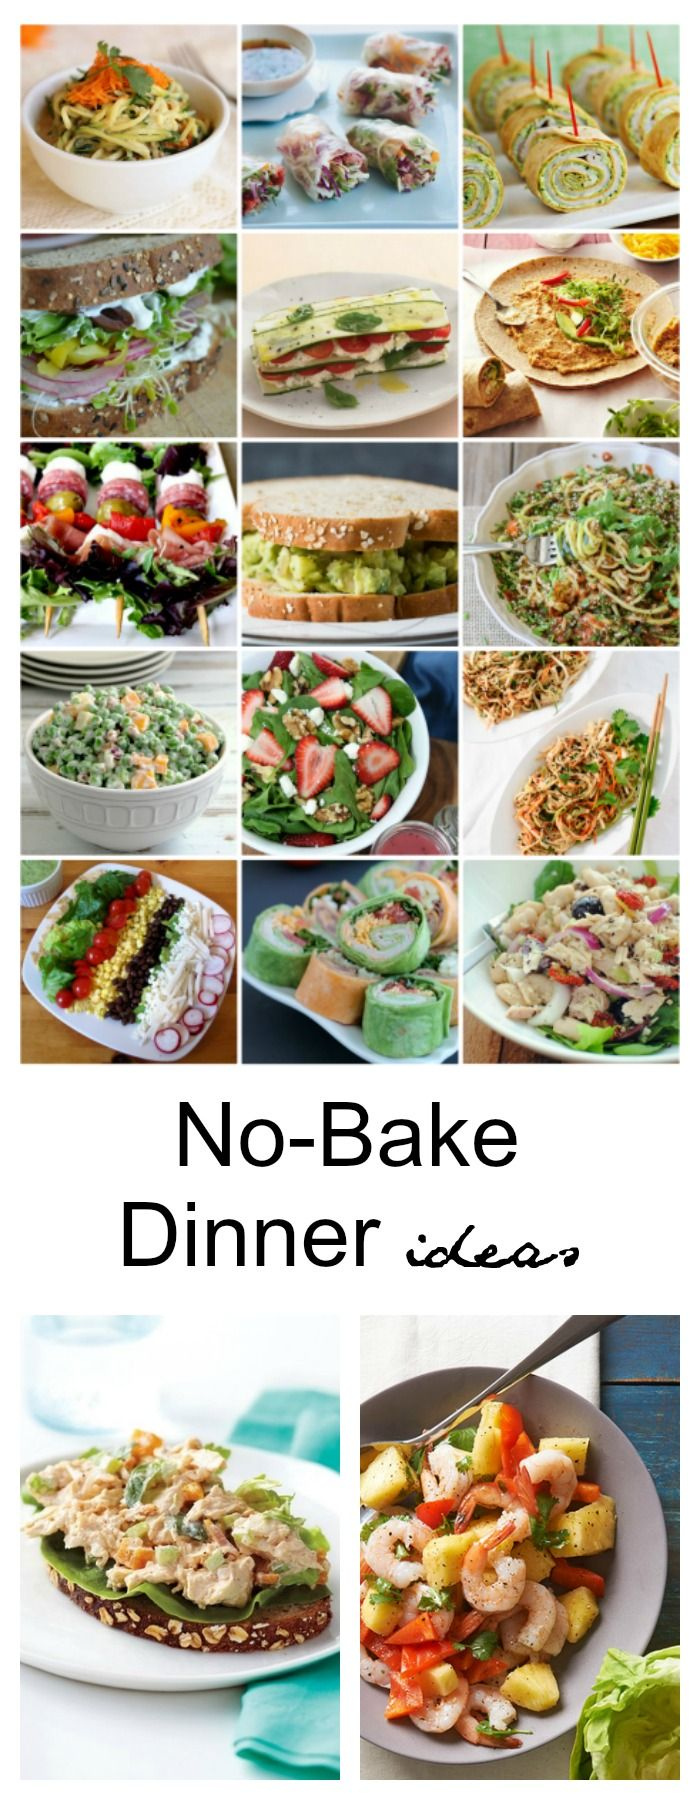 Recipe Ideas| I would much rather be outside enjoying my kids and the beautiful sunshine. So, today I have gathered some No-Cook Dinner Ideas that are healthy, tasty and heat-free.